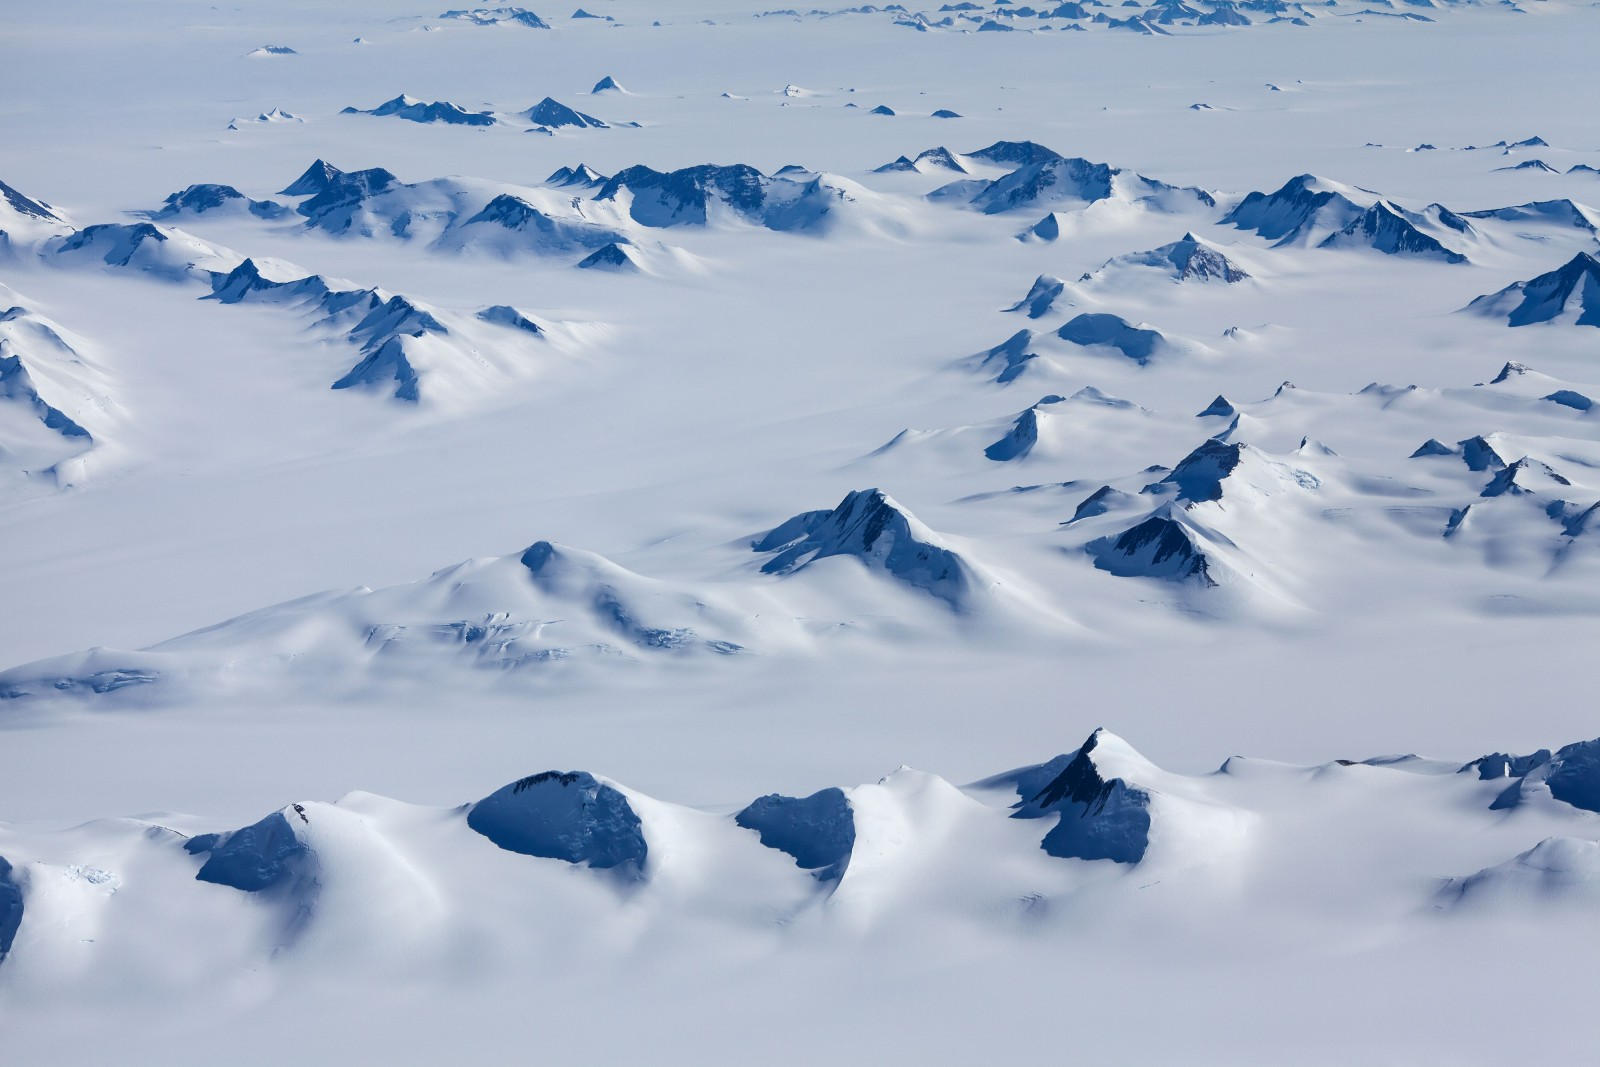 Peaks of the Transantarctic Range protrude like broken teeth from the polar ice cap in Victorialand. The range, which bisects the continent, divides the East Antarctic Ice Sheet from its troublesome twin, the West Antarctic Ice Sheet, which feeds a multitude of glaciers flowing into the Ross and Amundsen Seas.